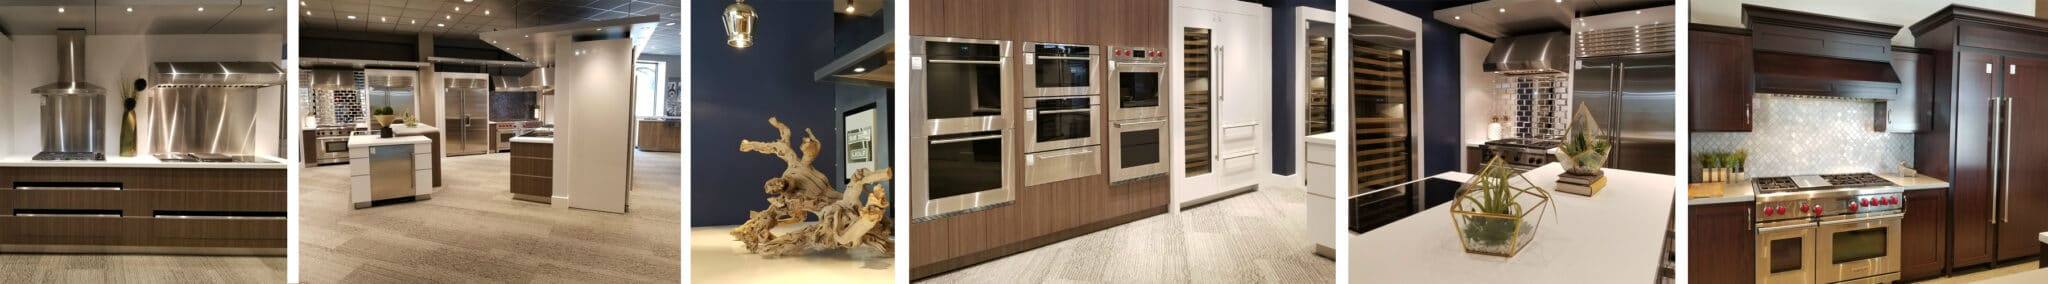 Sub-Zero, Wolf, and Cove Appliances in The Living Kitchen at Capital Distributing Dallas TX